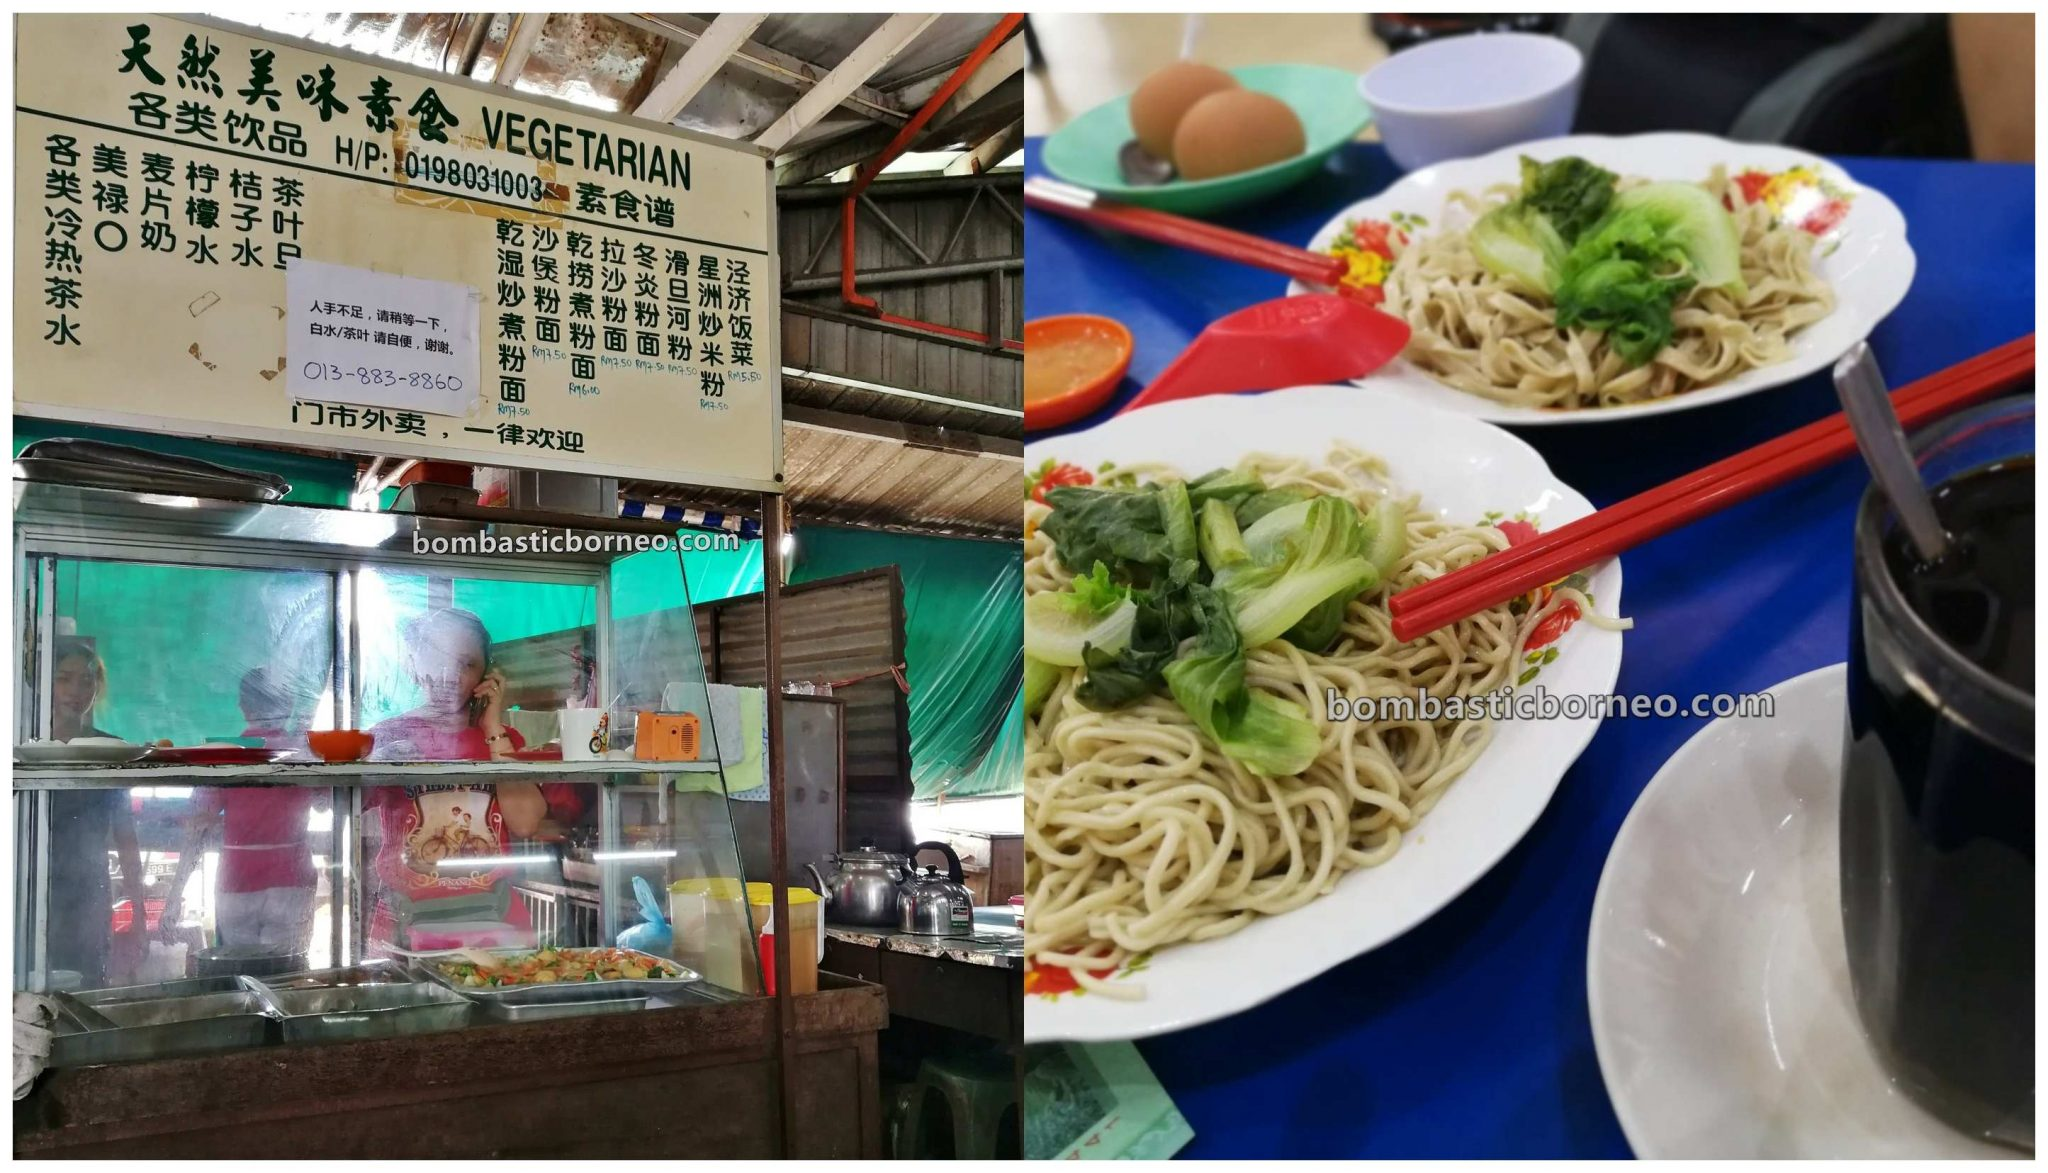 local market, traditional, backpackers, destination, exploration, sayuran, vegetables, Borneo, Malaysia, Tourism, tourist attraction, travel guide, 马来西亚沙巴, 新安综合巴刹, 斗湖美食中心,